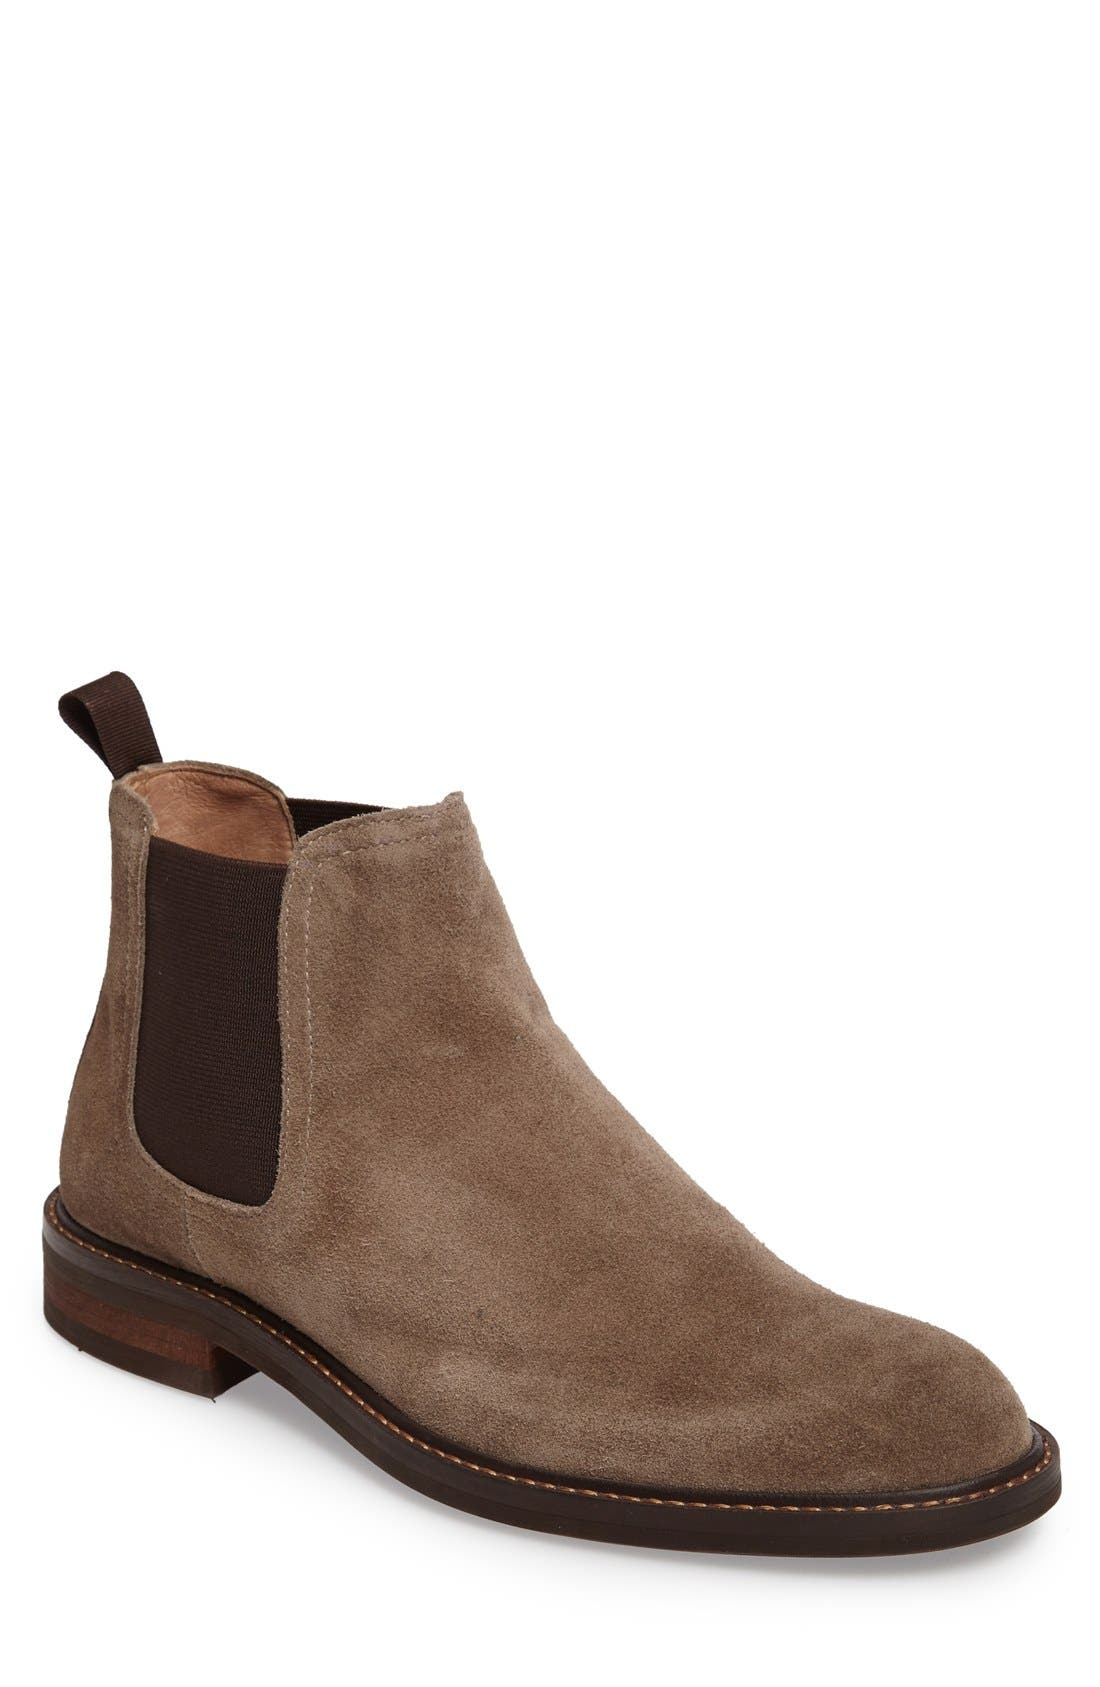 Alternate Image 1 Selected - 1901 Horton Chelsea Boot (Men)